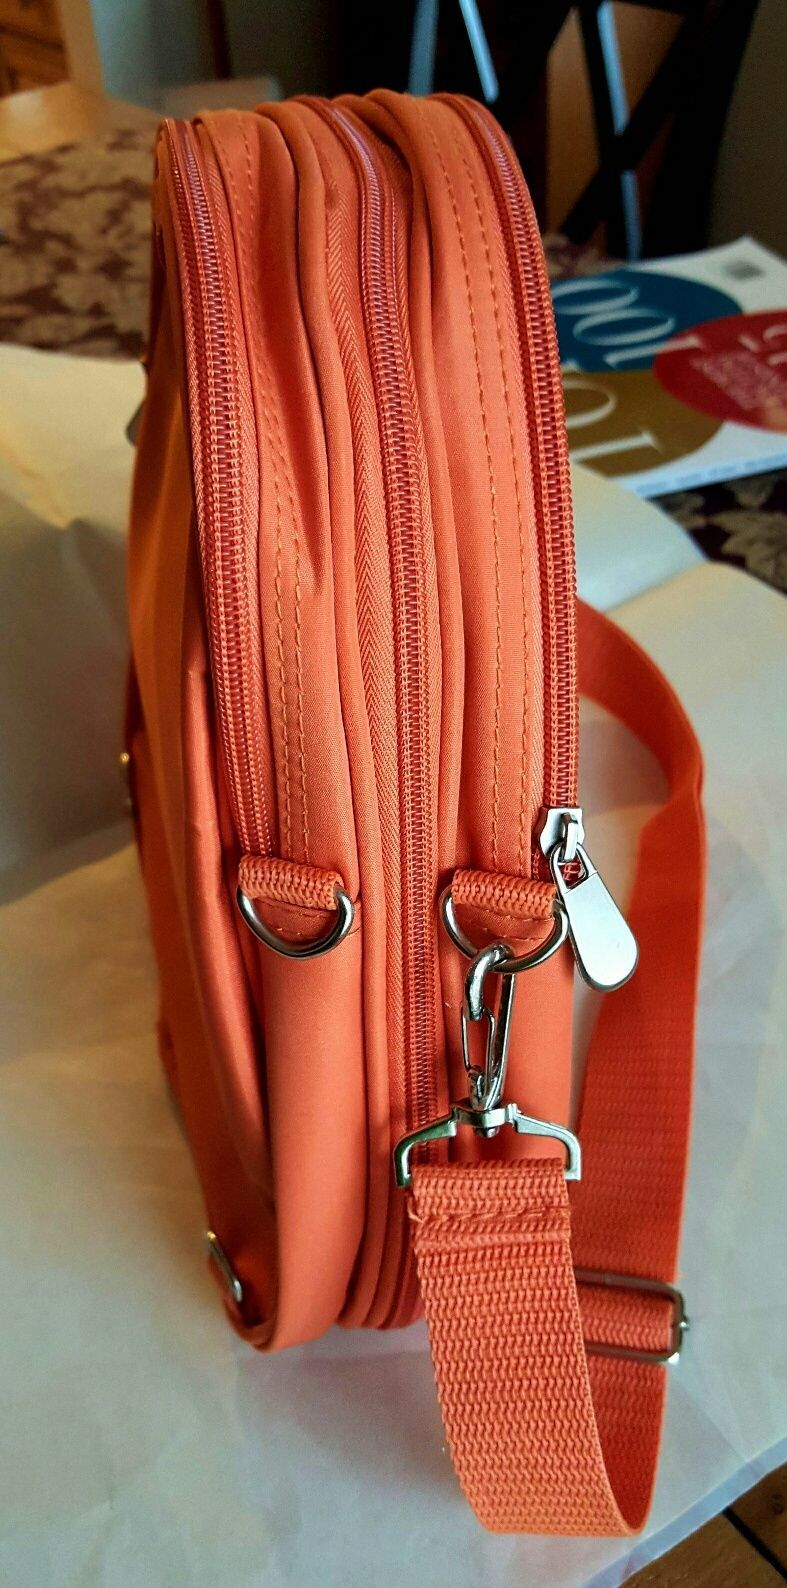 Beyond a Bag 3 Bags in One Backpack, Sling and Duffel Bag NWT image 10